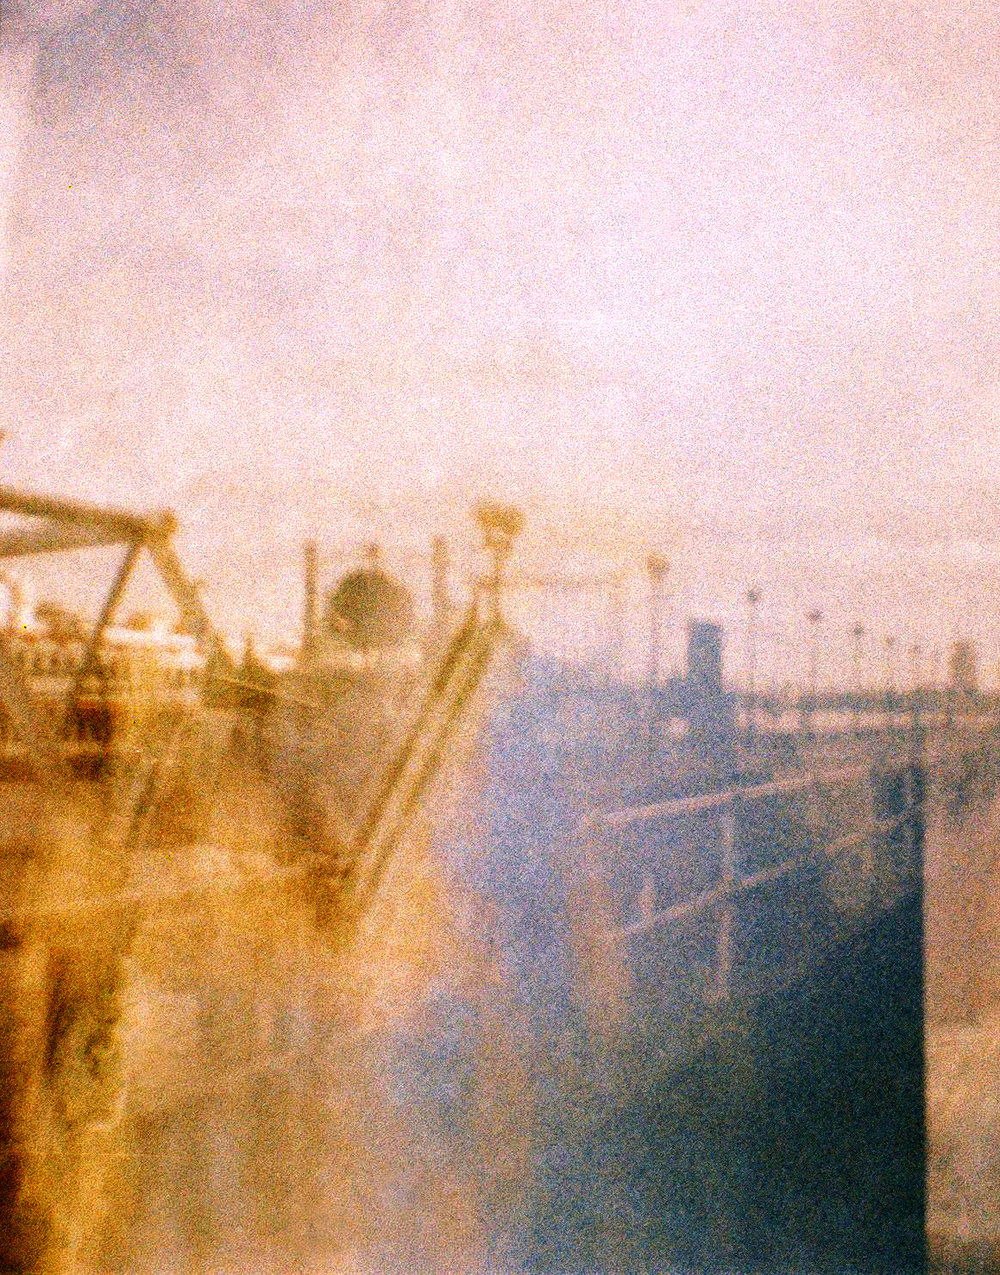 Lomo_London_xx.jpg